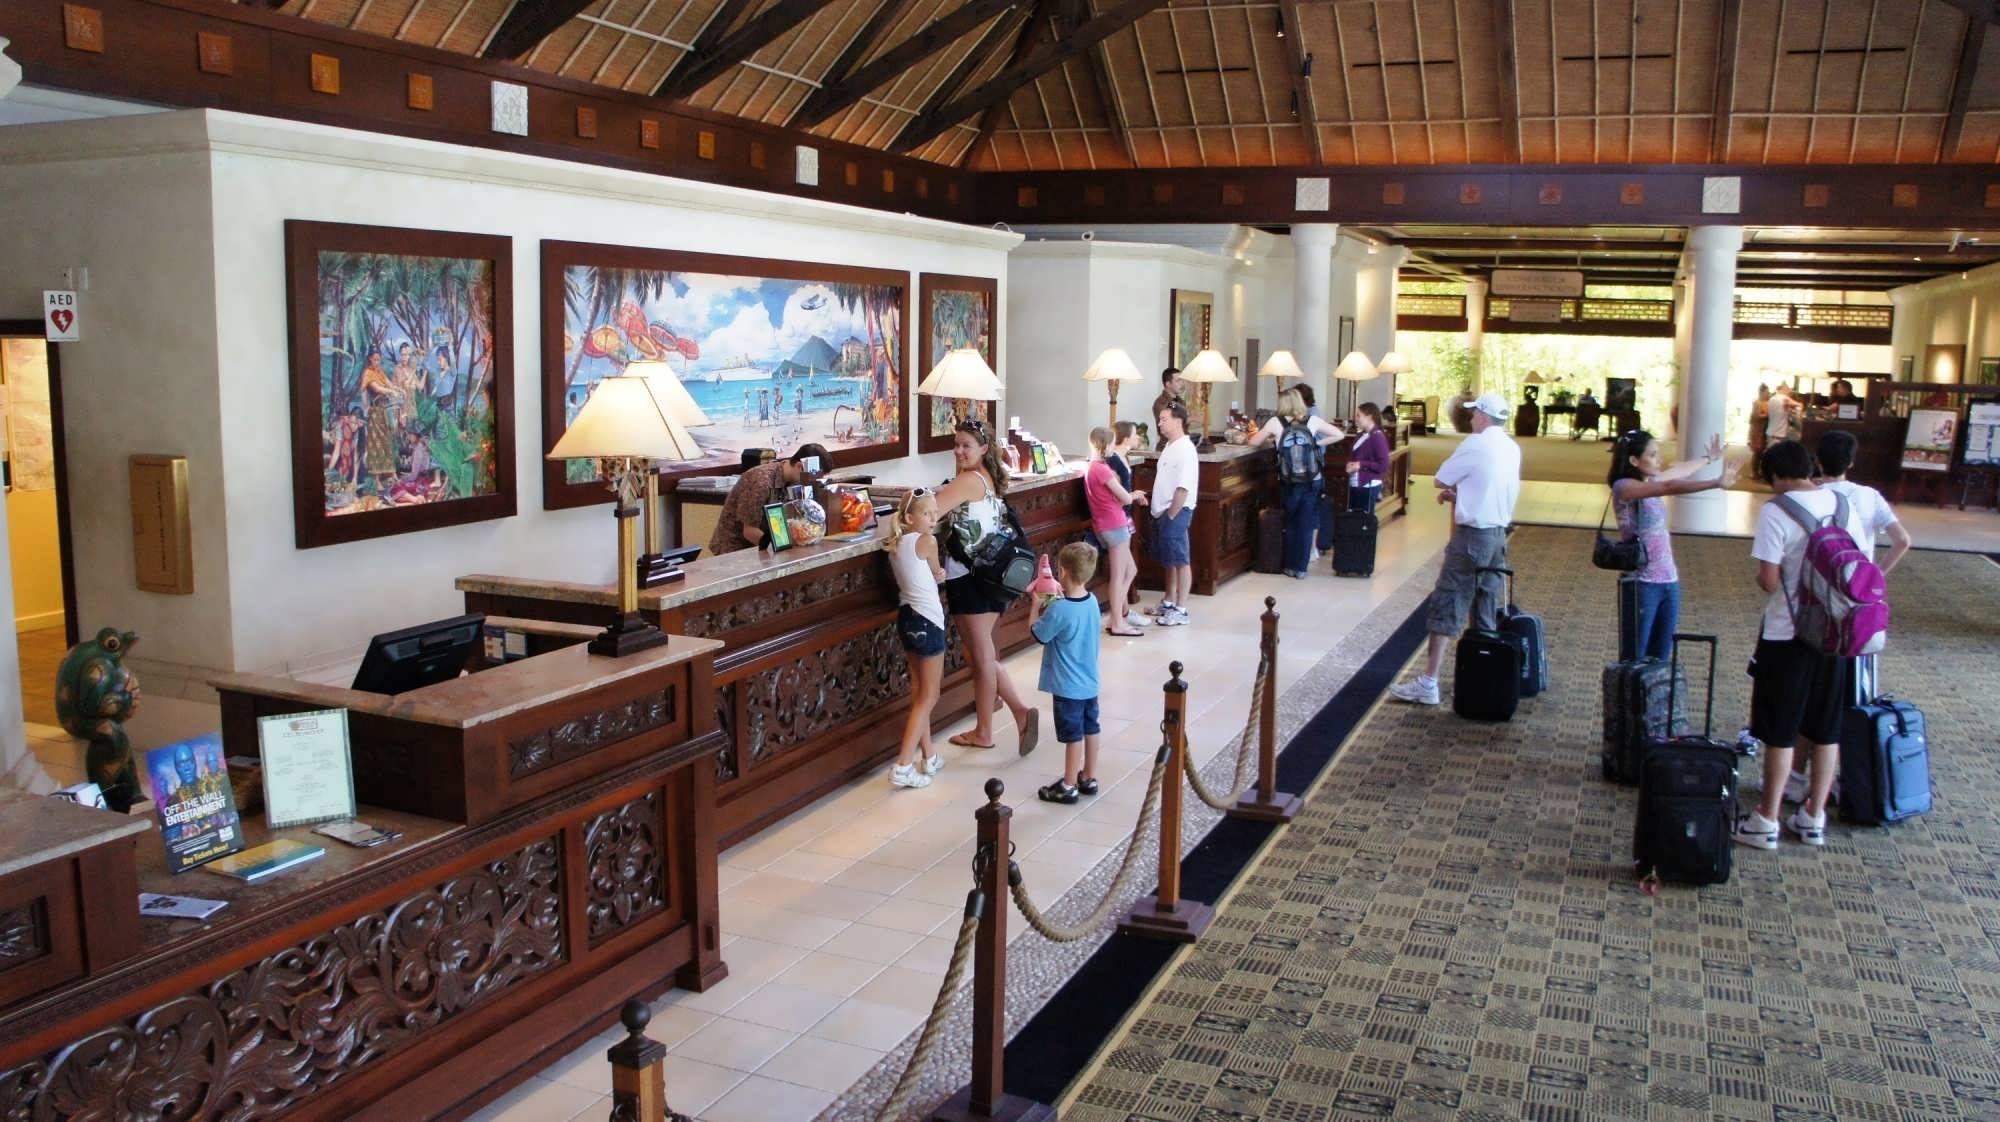 Registration & lobby area at Loews Royal Pacific Resort: front desk